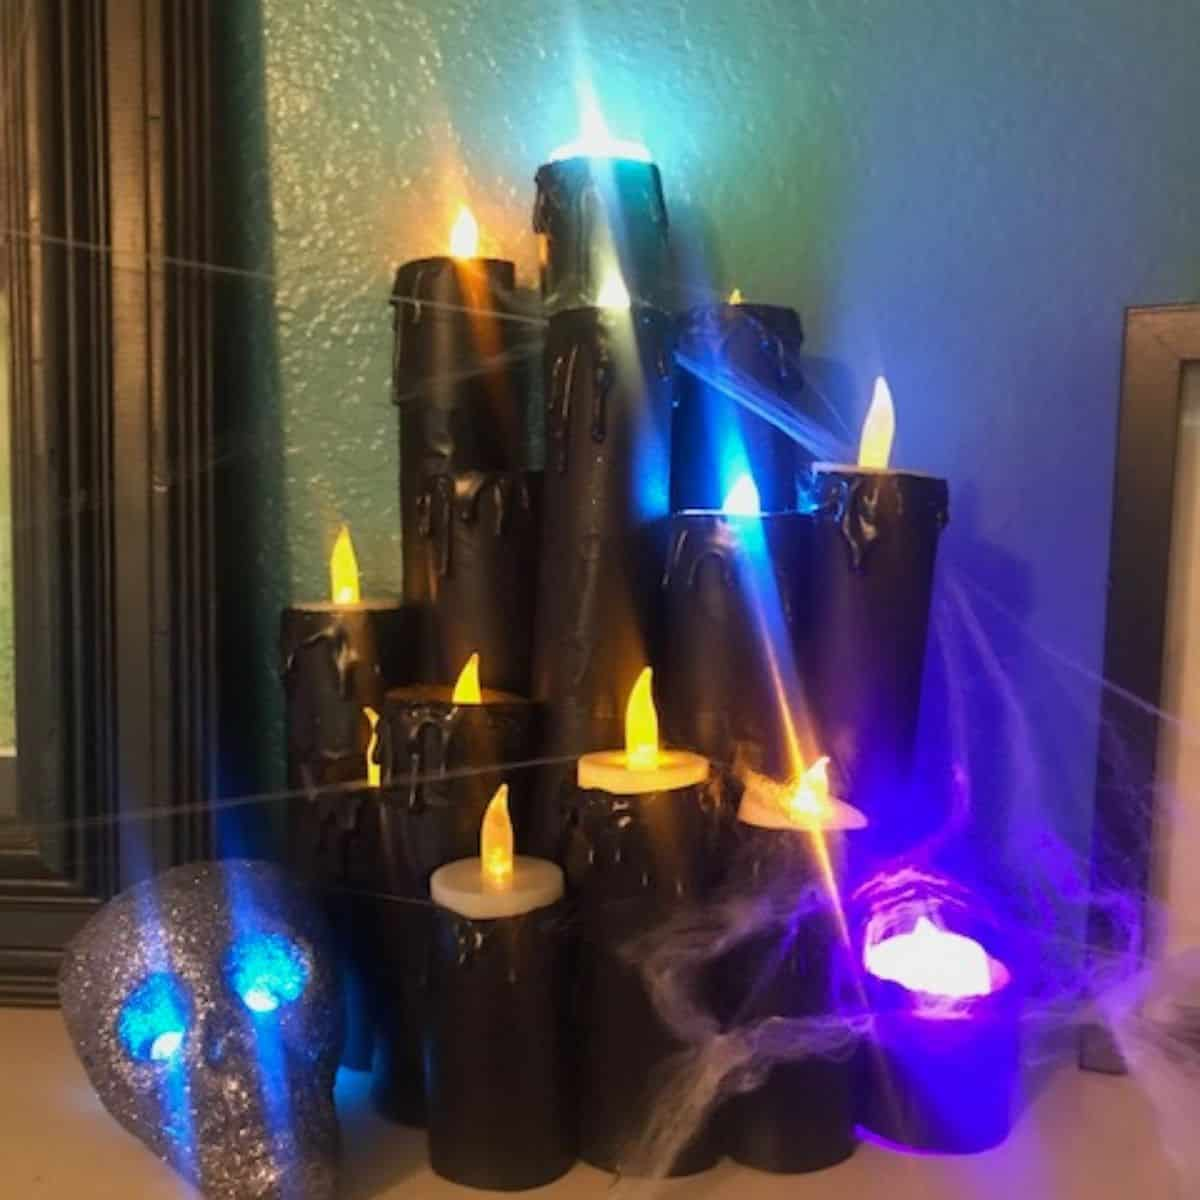 DIY Fake Halloween Toilet Paper Roll Candles